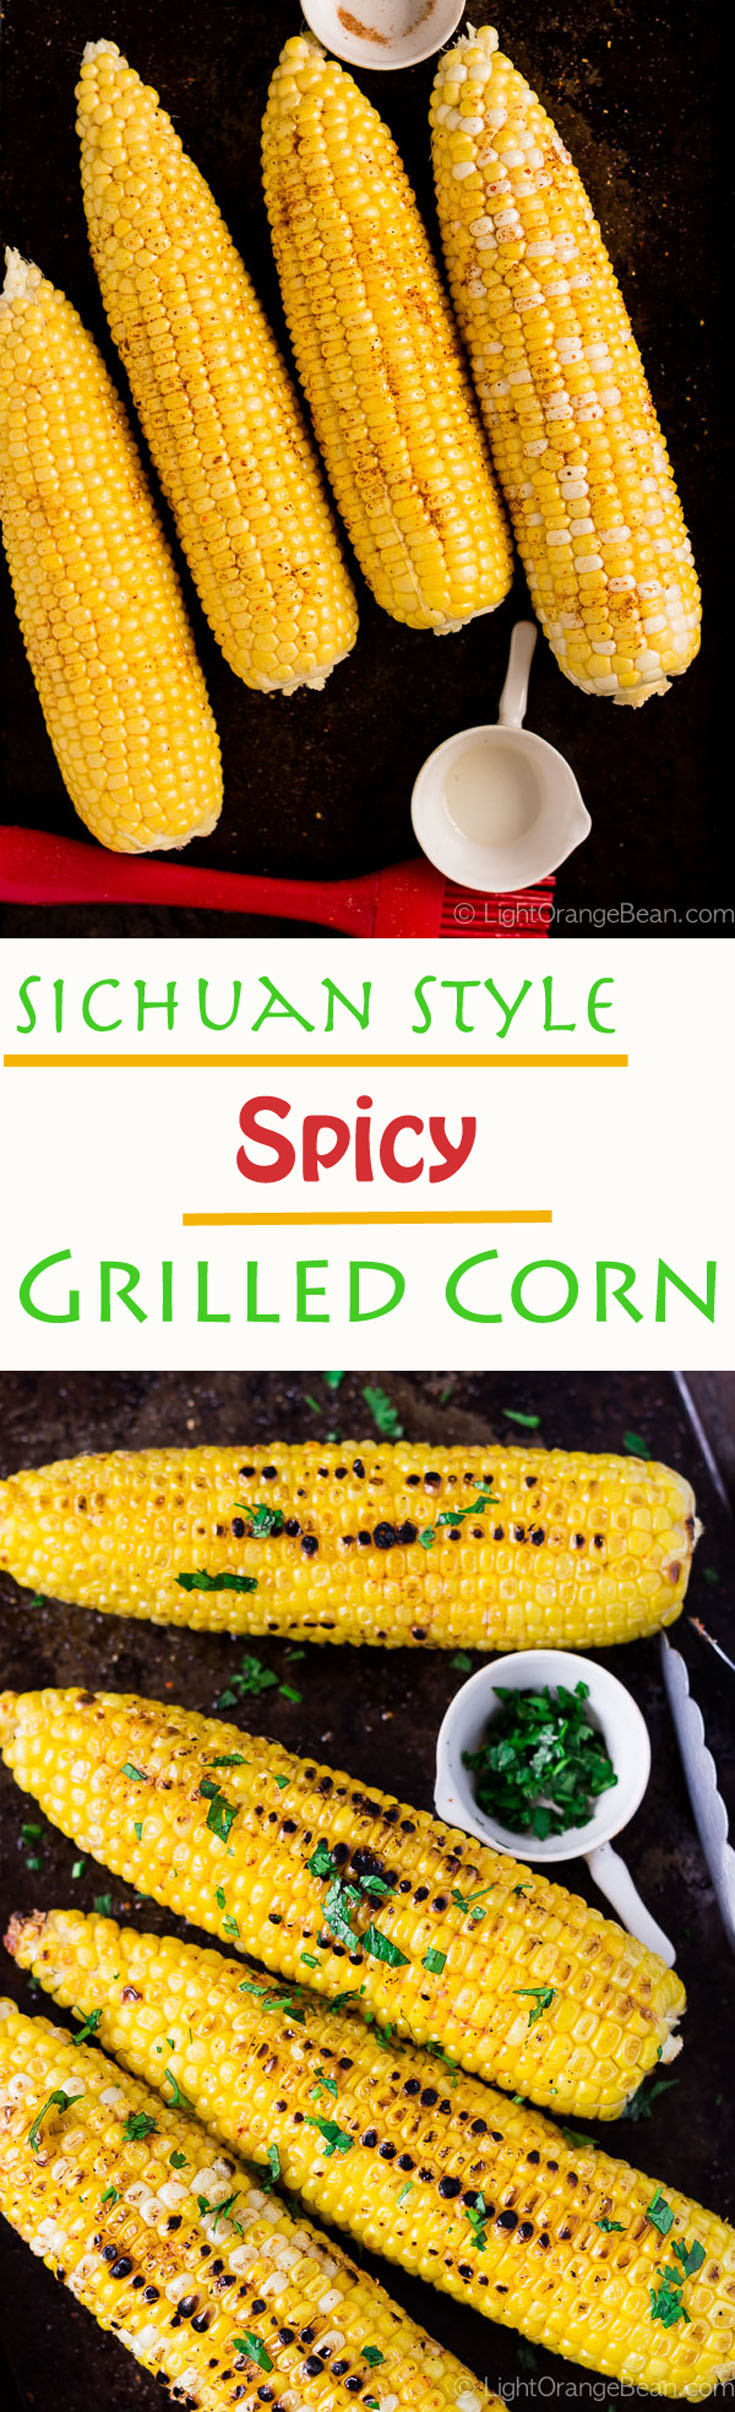 With a few tips and only 6 ingredients, you can make this Sichuan style spicy grilled corn on the cob like a pro.  They have a sweet, pungent, and smoky taste.  You'll want to have more than one.